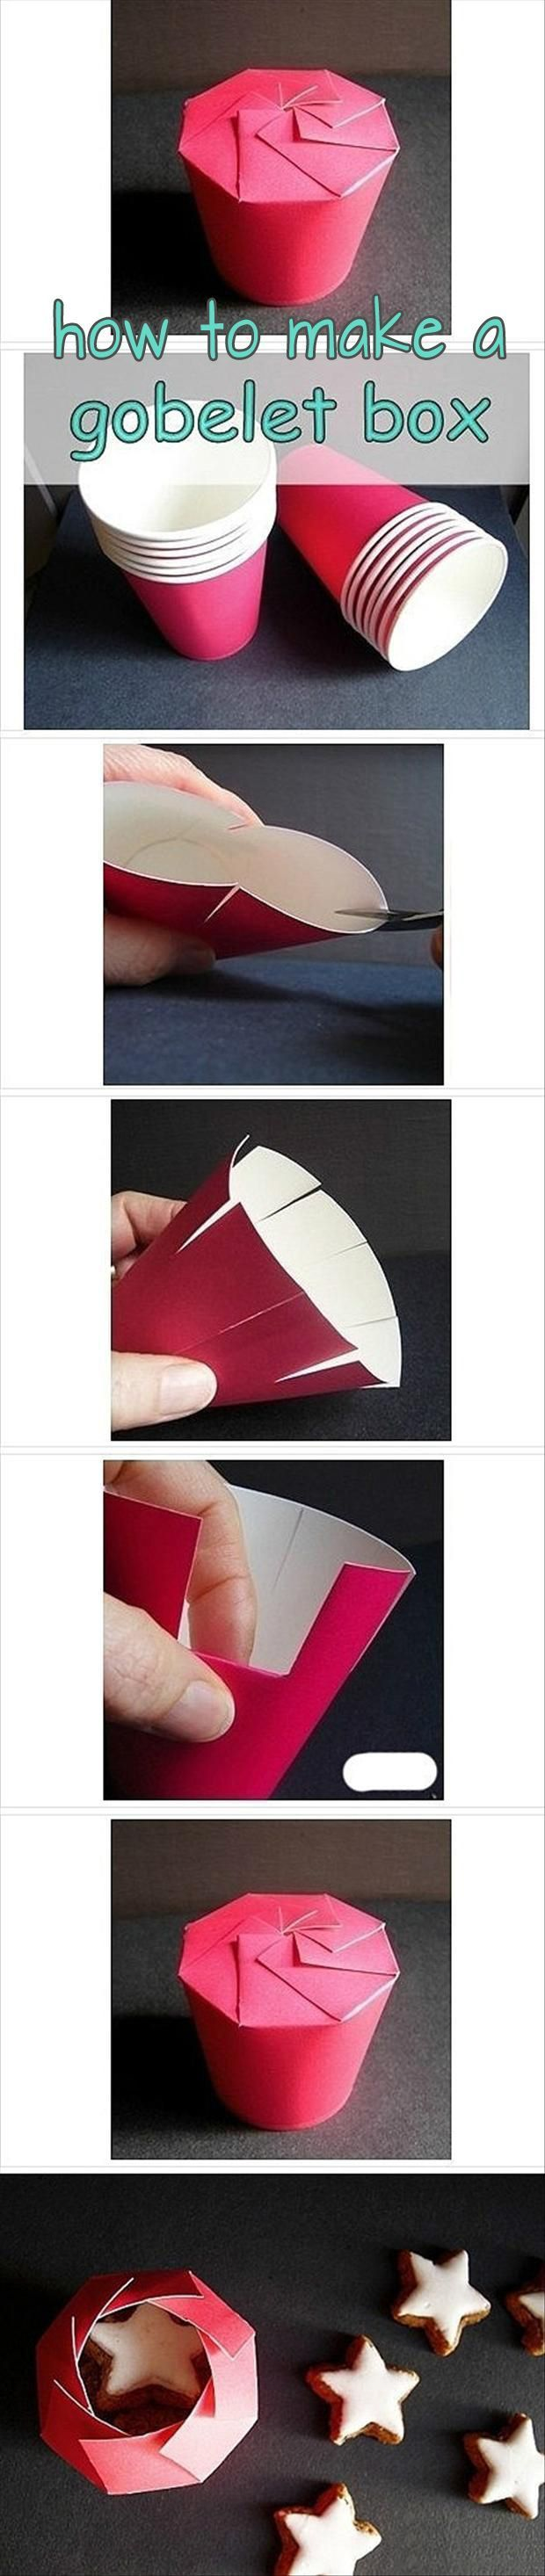 a how to make a box to give muffins or cookies.  Use a paper drinking cup in any color, cut off the top, make some incisions in the sides and presto!   PinFive